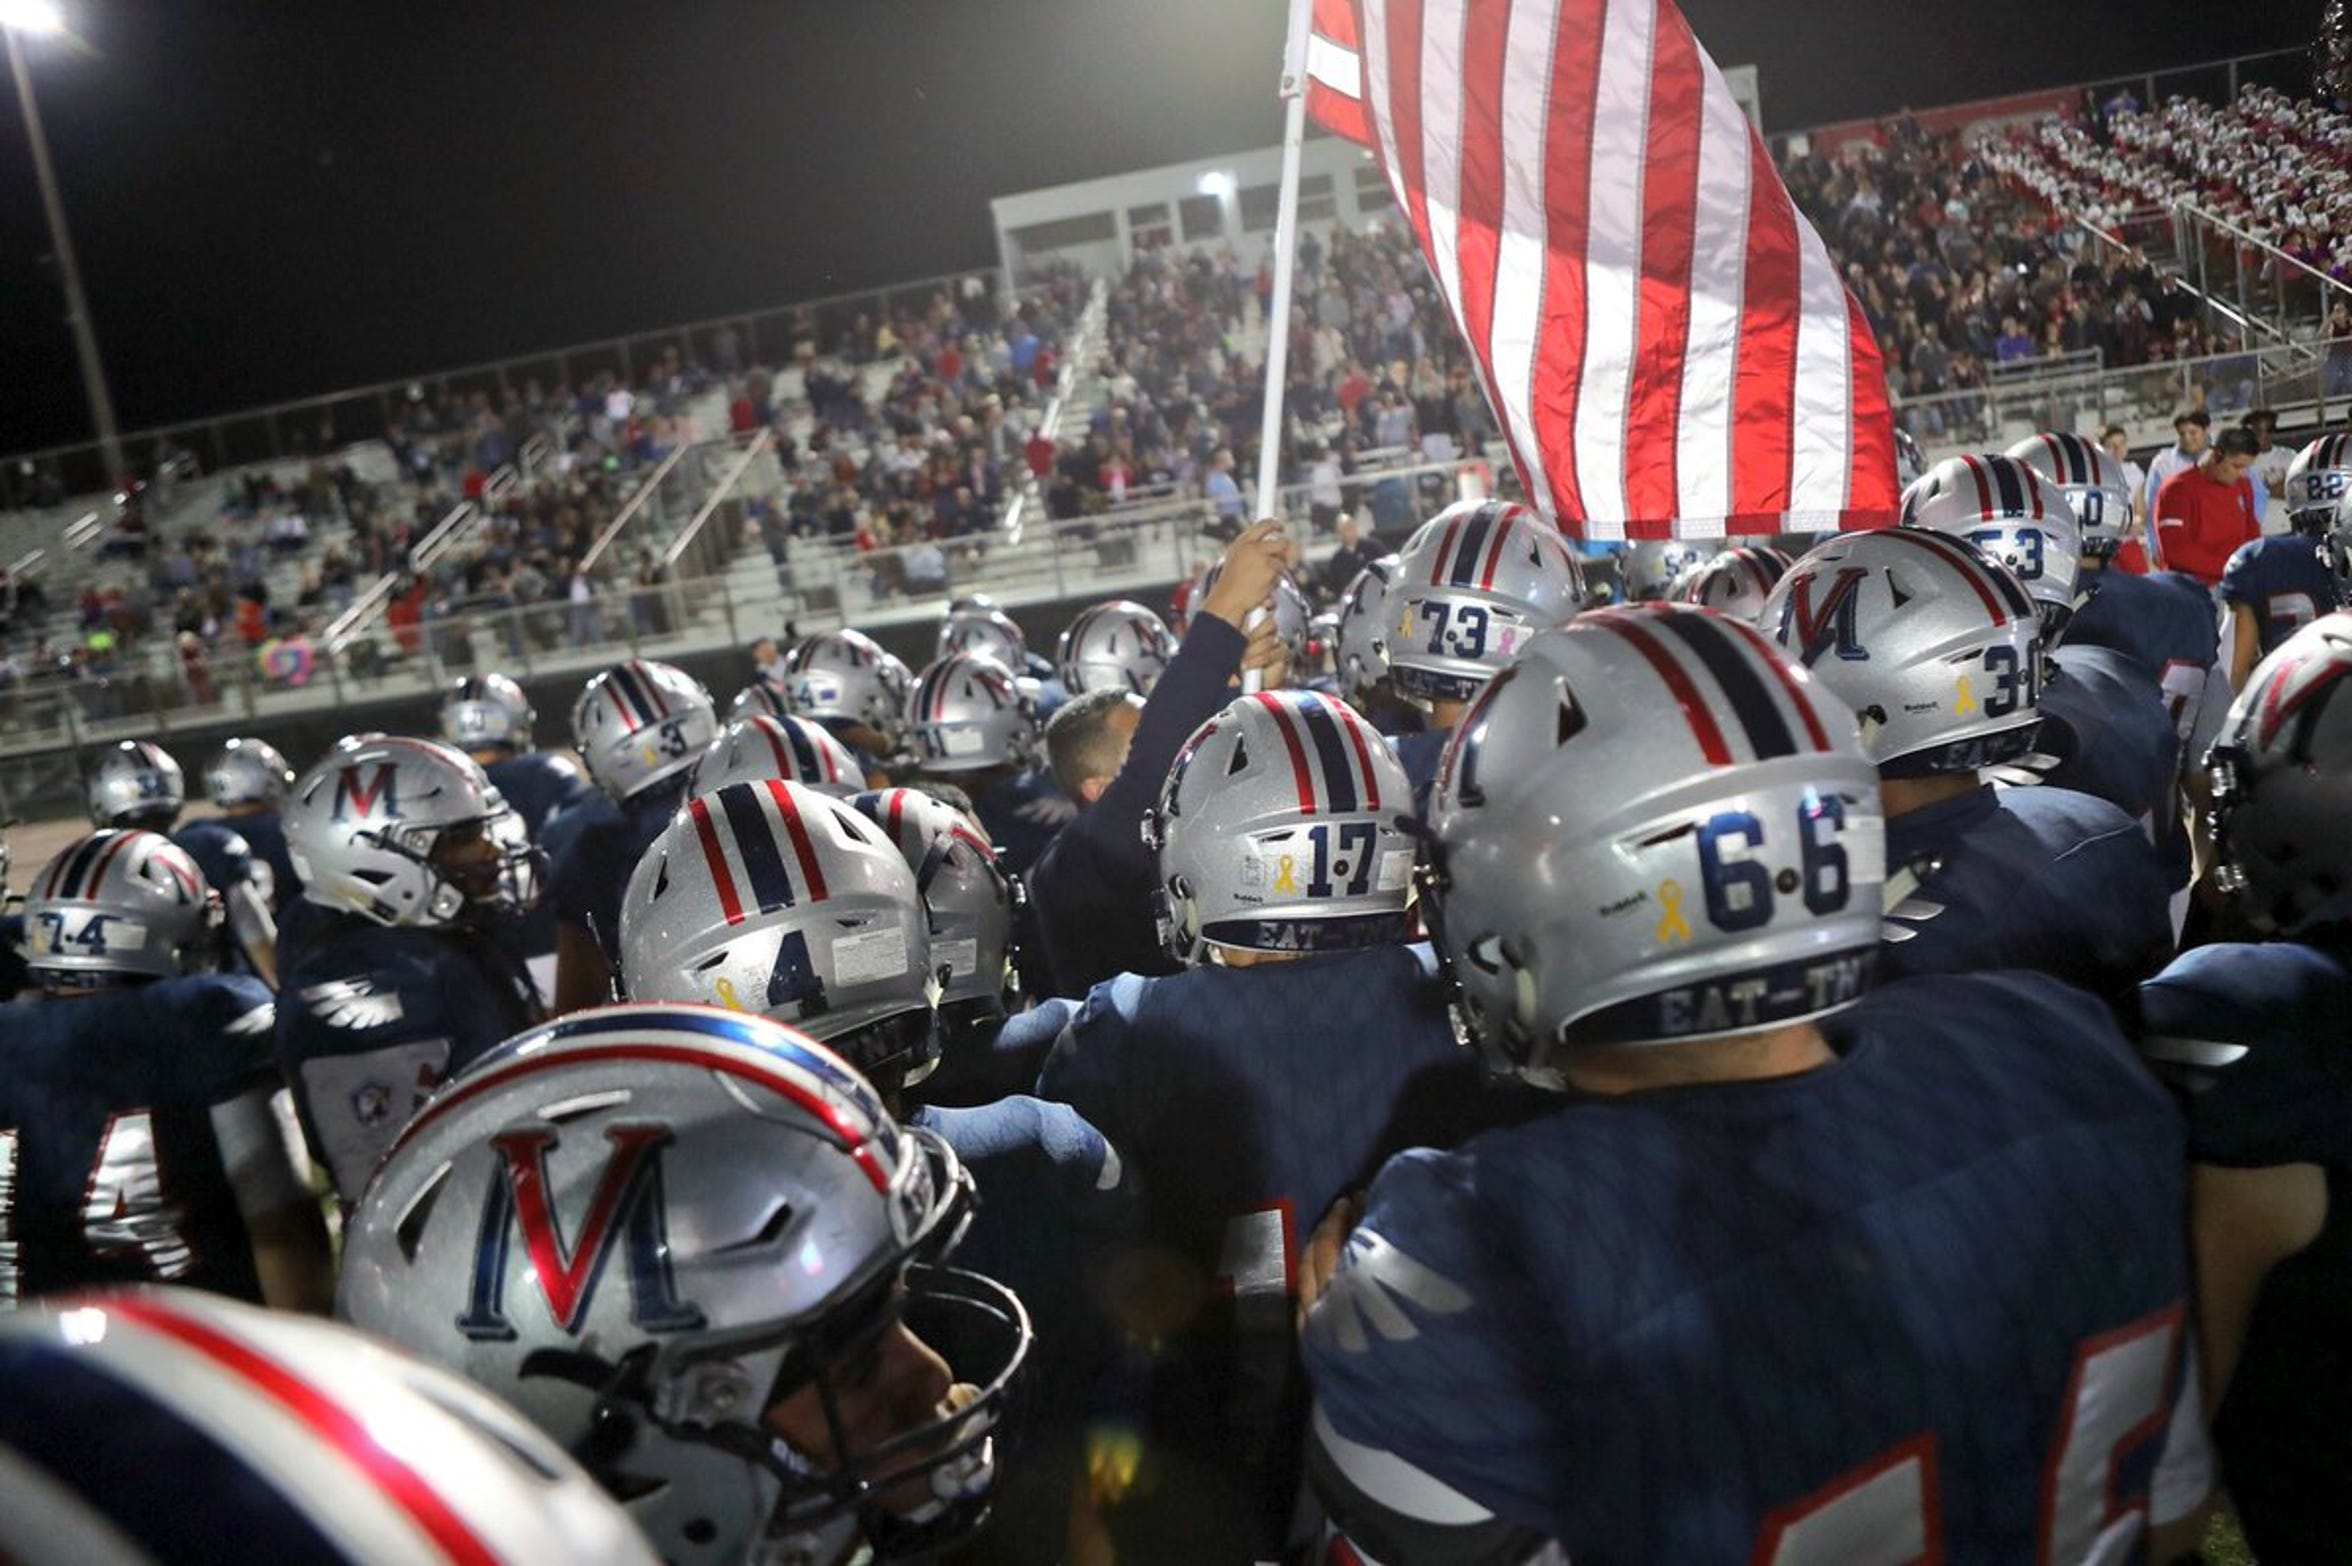 The Veterans Memorial Eagles and the Victoria West Warriors battle at Cabaniss Stadium in Corpus Christi.